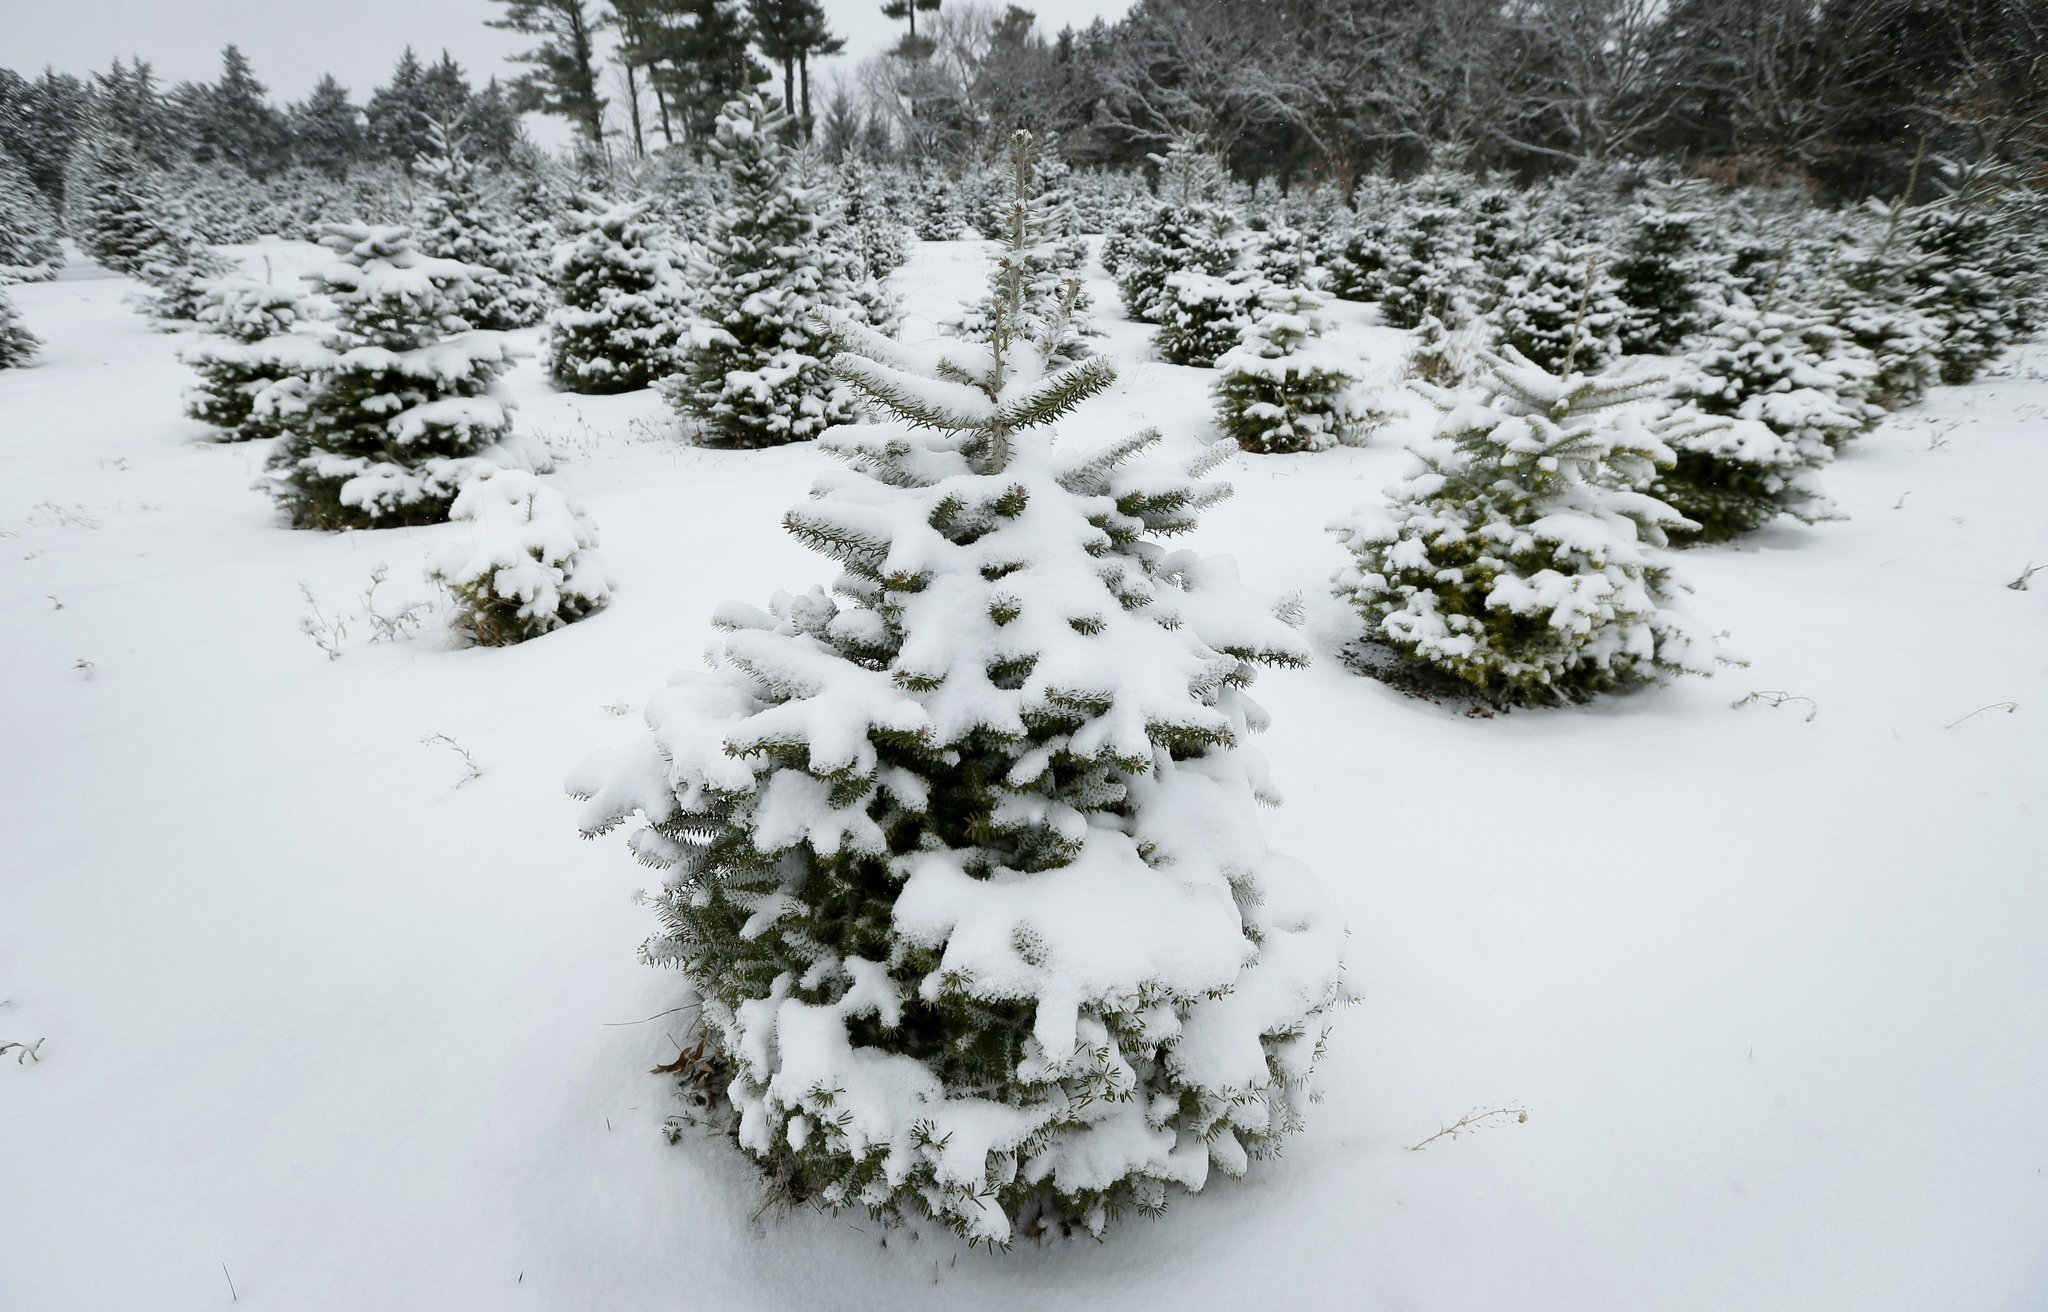 Growers grateful for higher Christmas tree prices - The San Diego ...